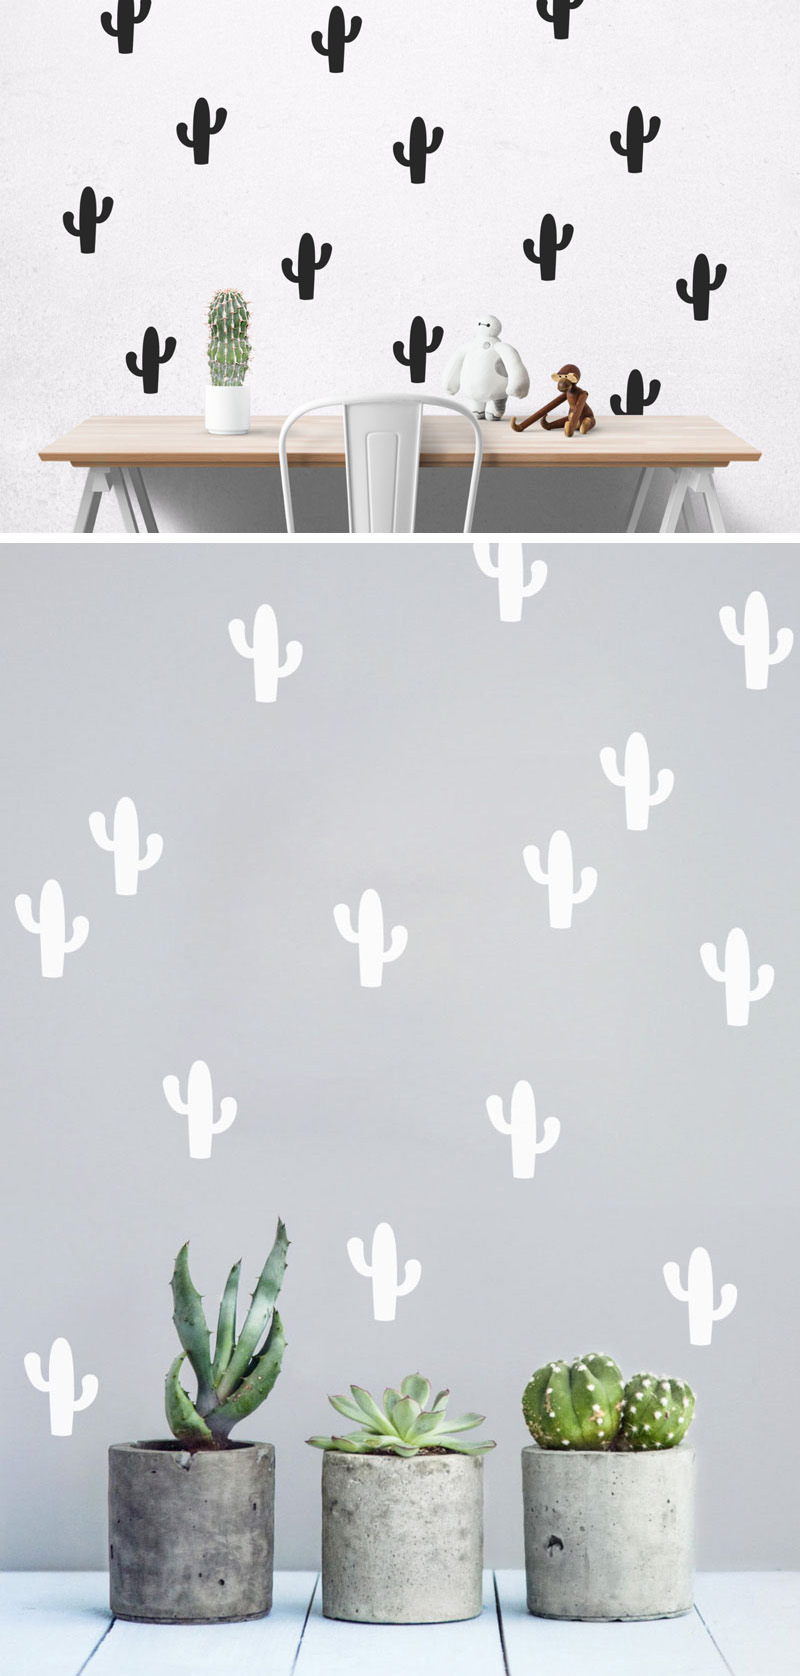 These modern cacti wall decals bring fun to your interior and are an easy way to decorate your walls without leaving marks or holes.